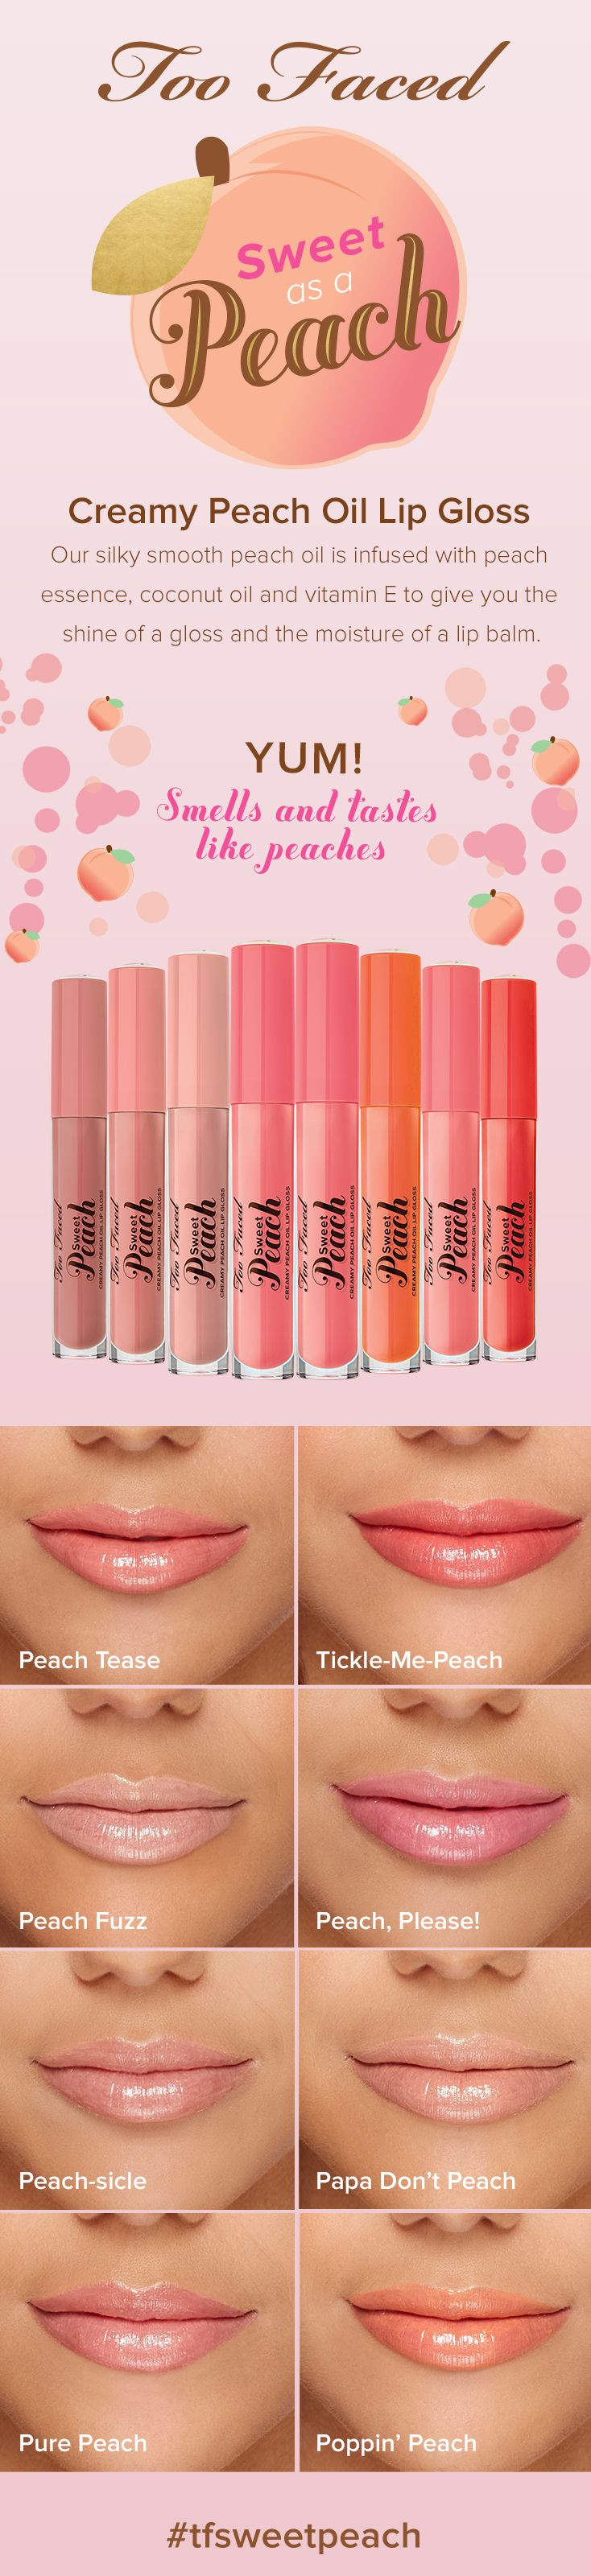 I want one but also $19 for a thing of lip gloss??